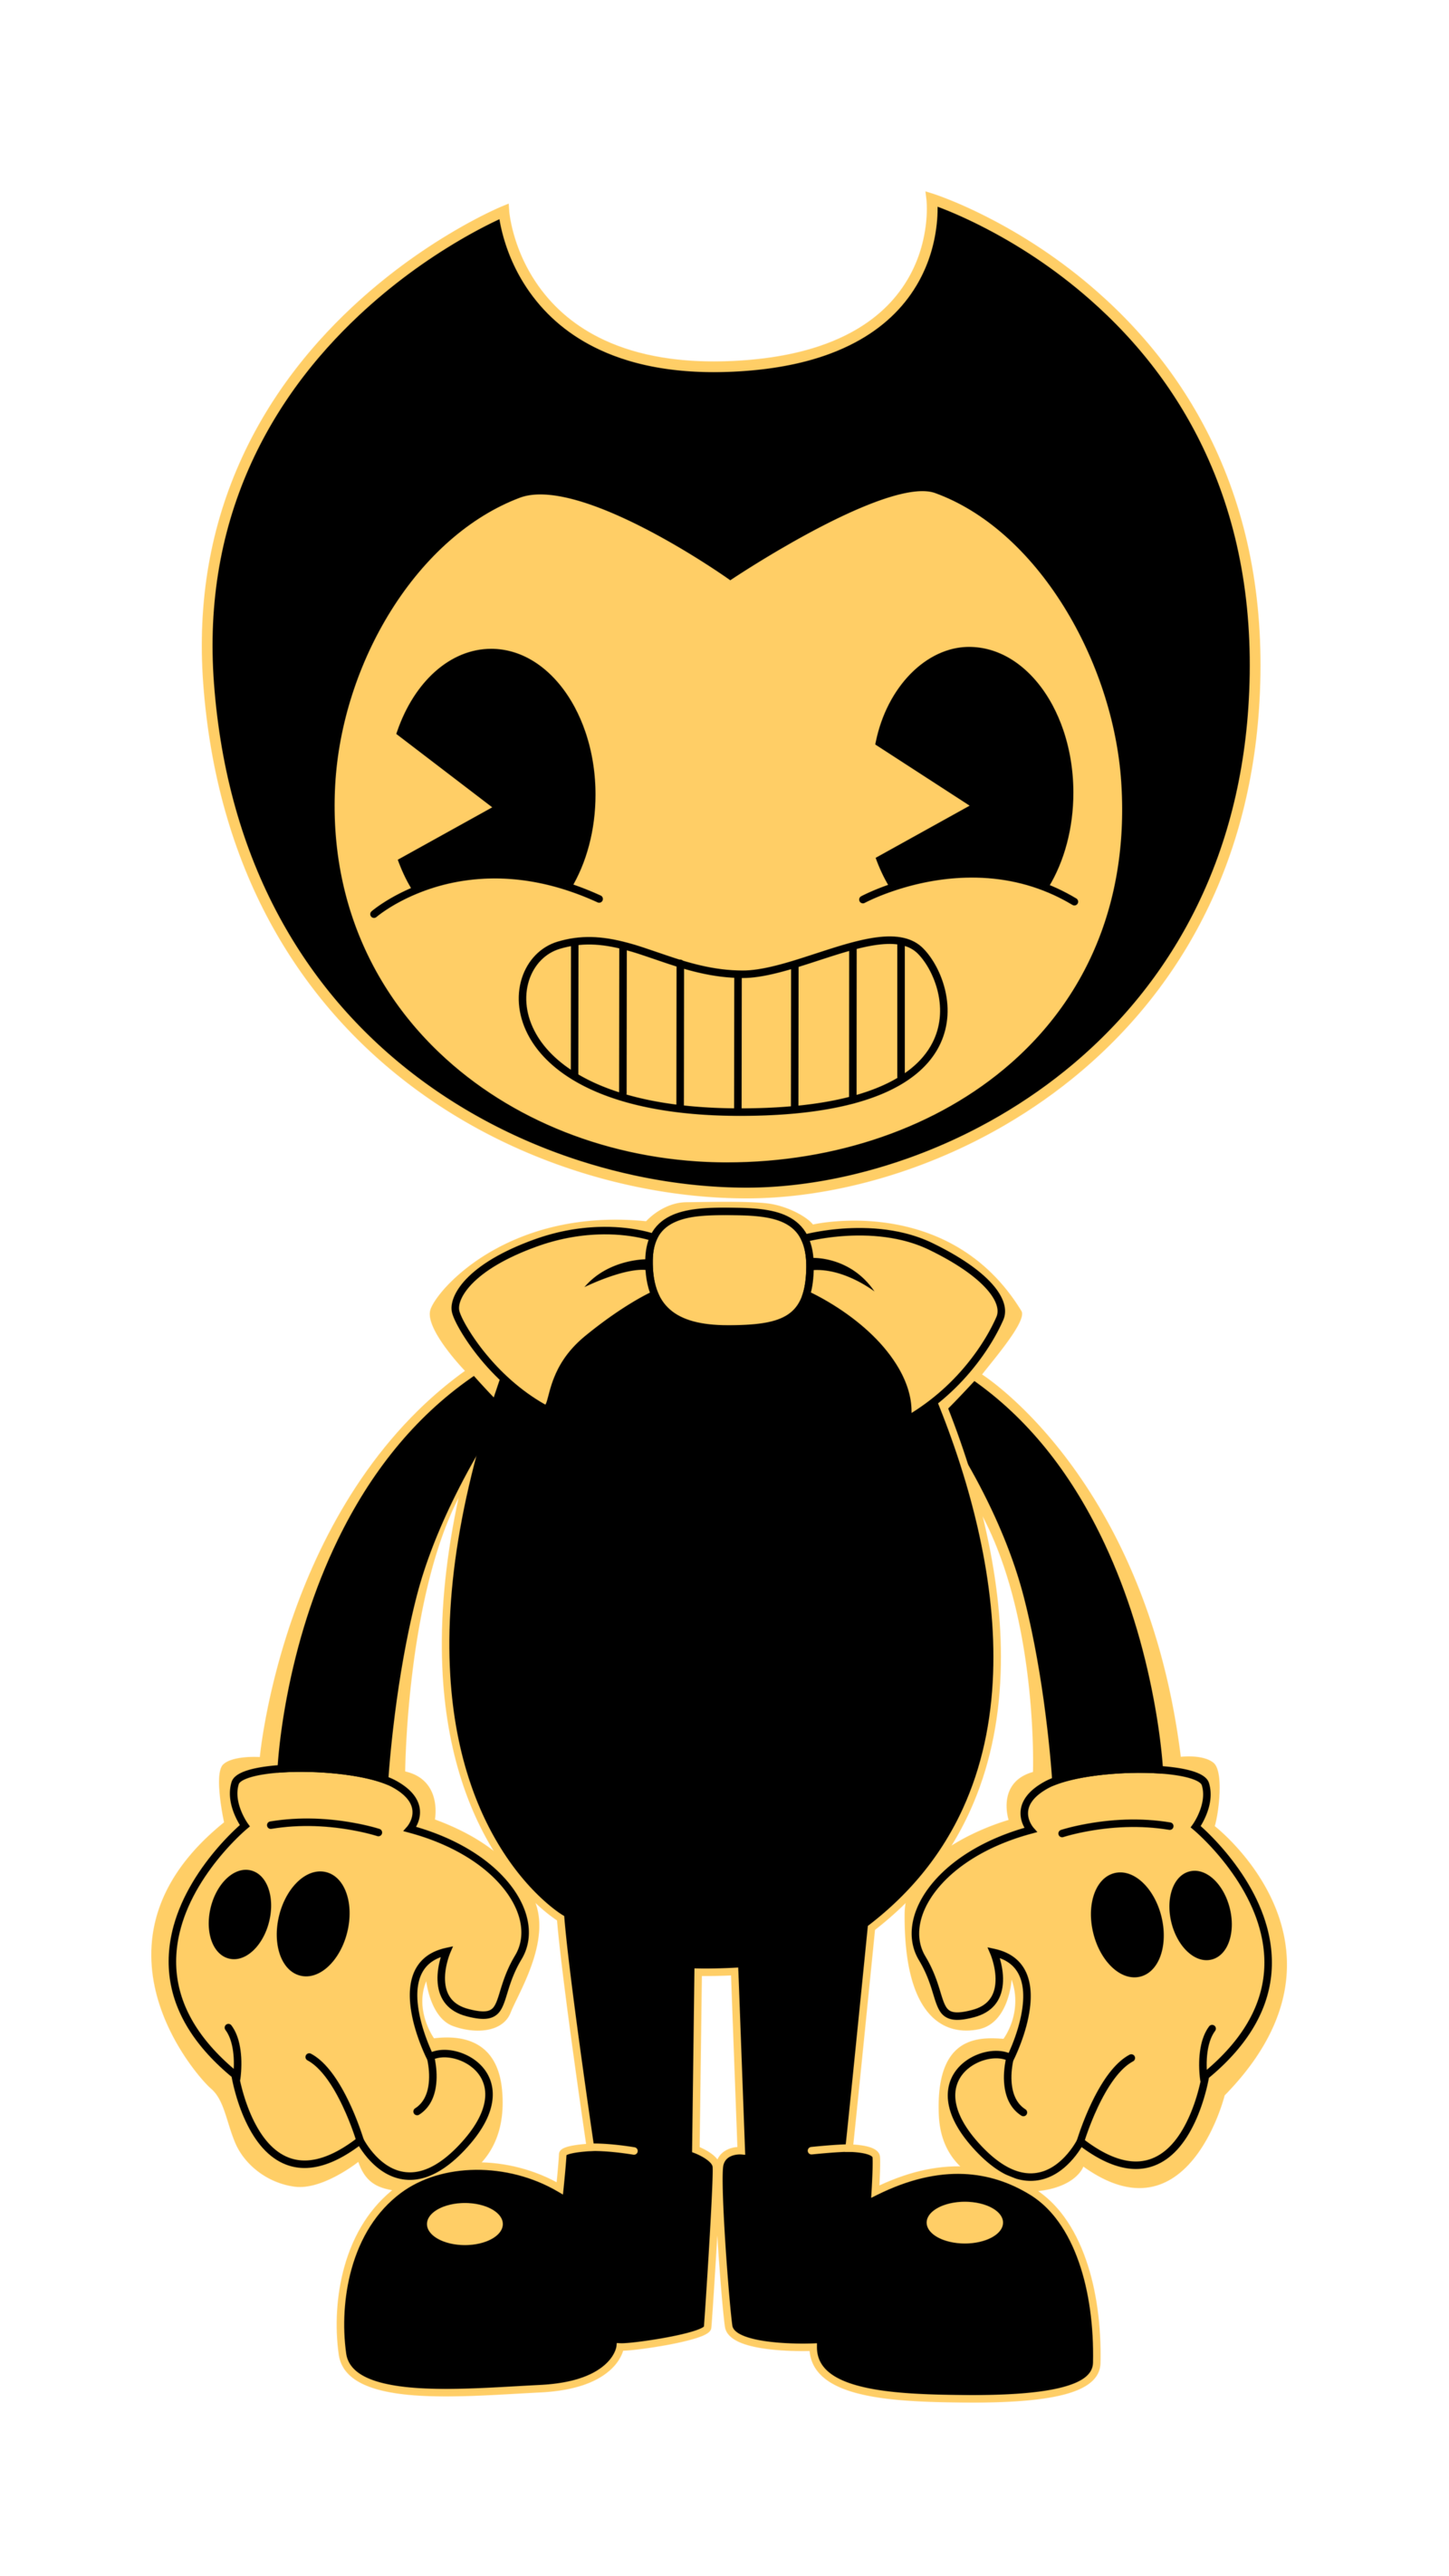 Demon clipart evil person. Bendy and the ink